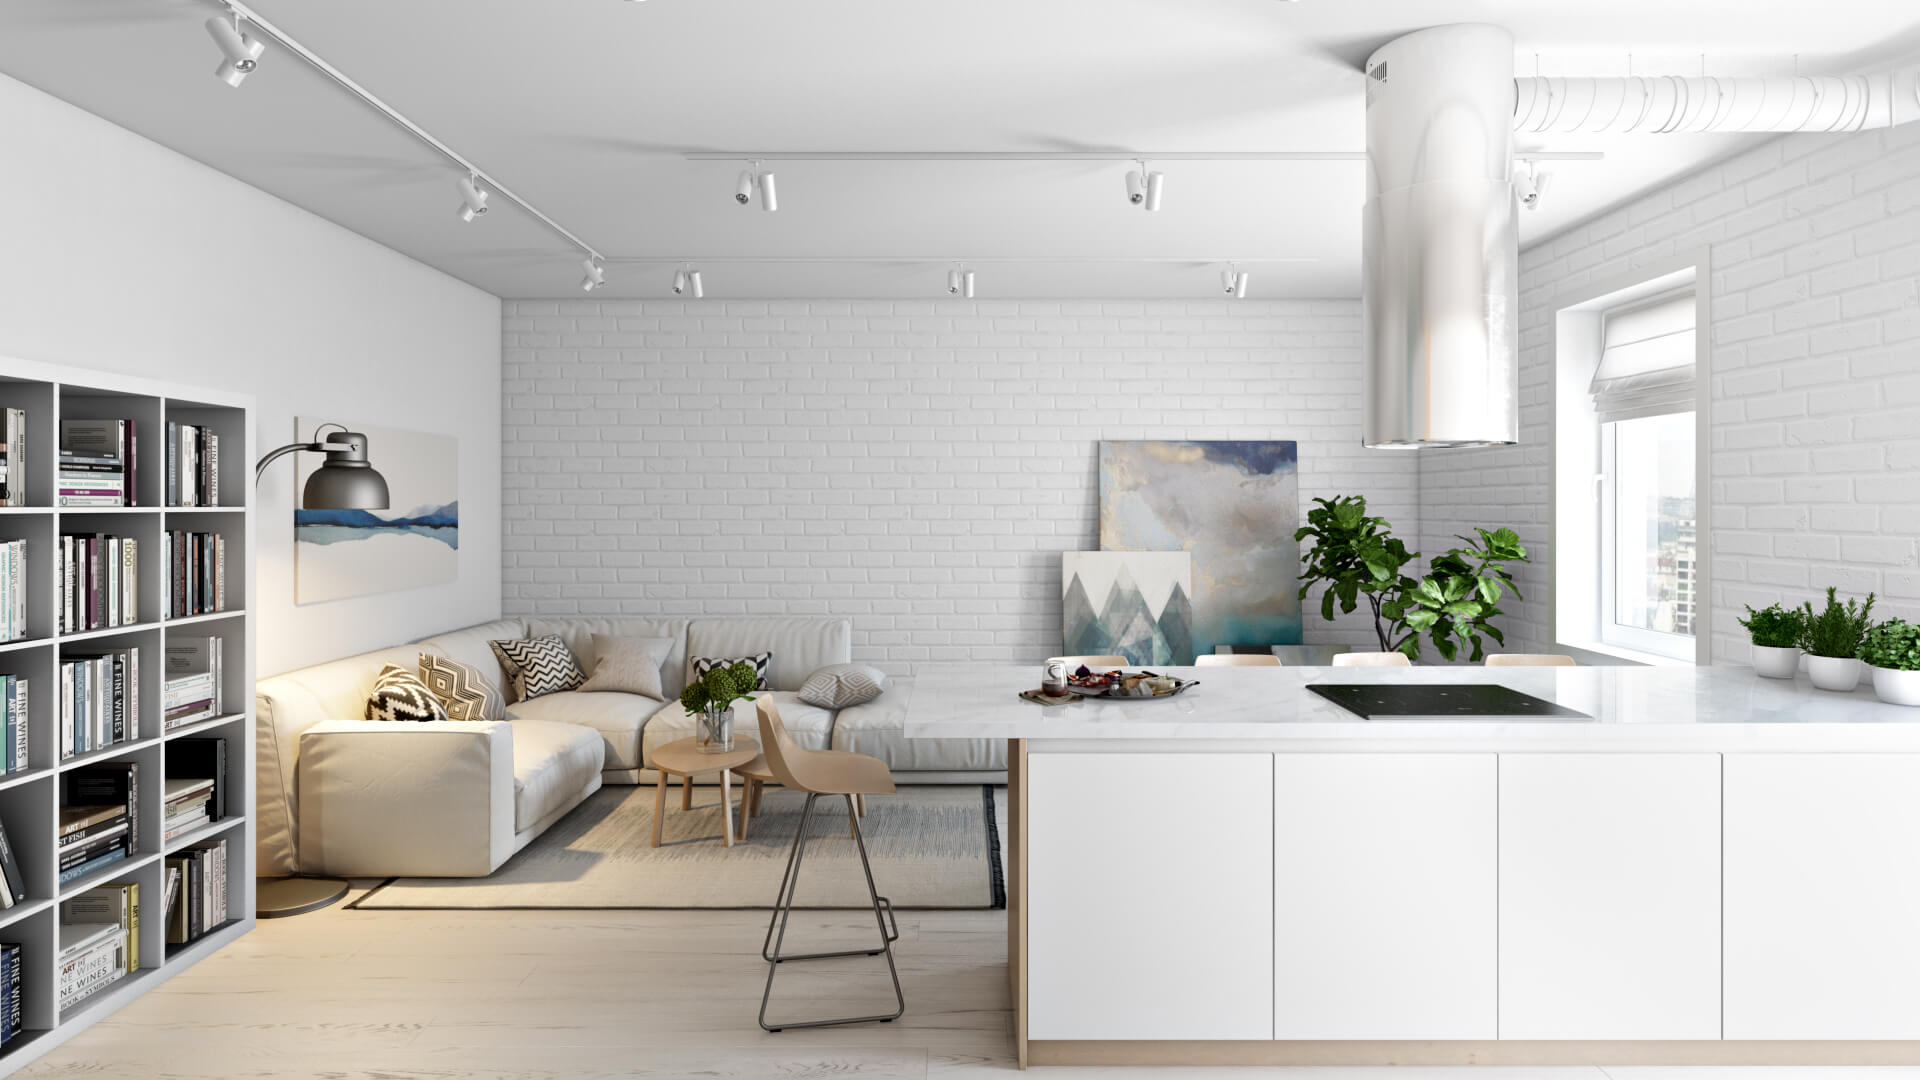 3D Kitchen Interior Rendering for Email Marketing Campaign